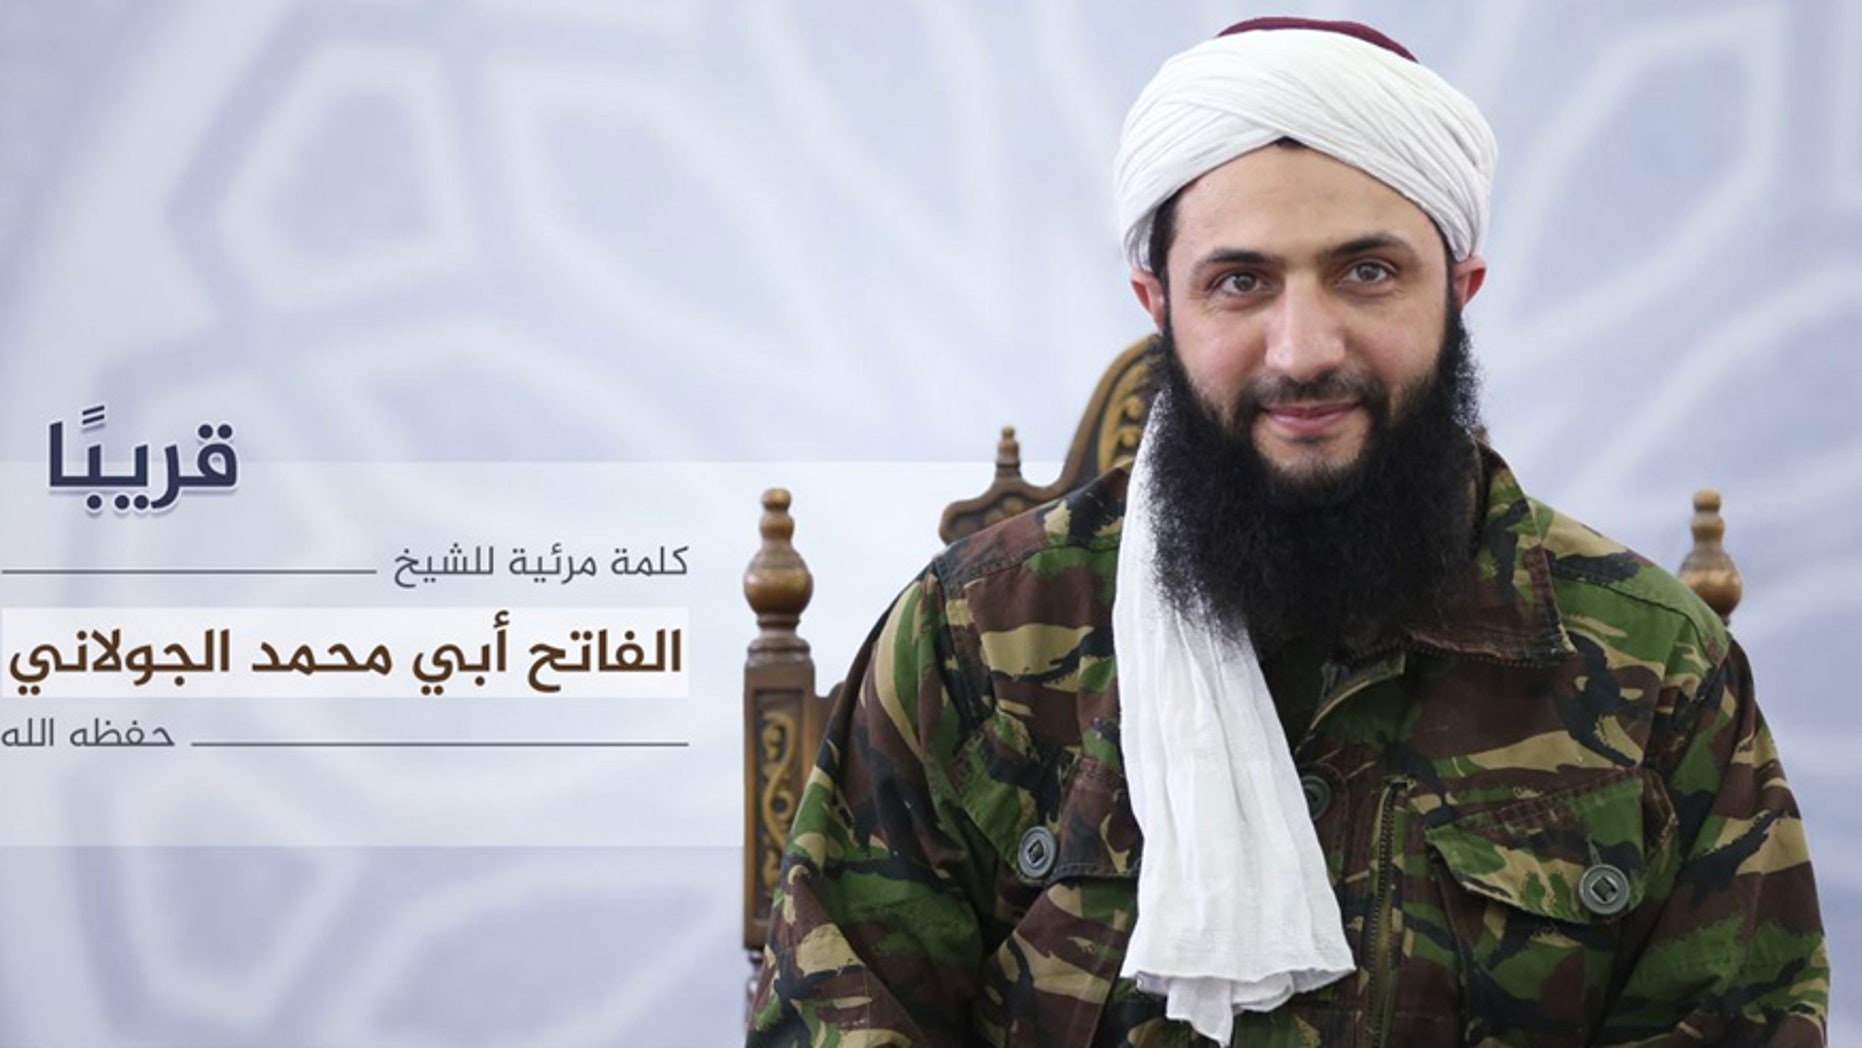 July 27, 2016: An undated photo of Nusra Front leader Mohammed al-Golani announced in a video message that the militant group is changing its name, and claims it will have no more ties with Al Qaeda.